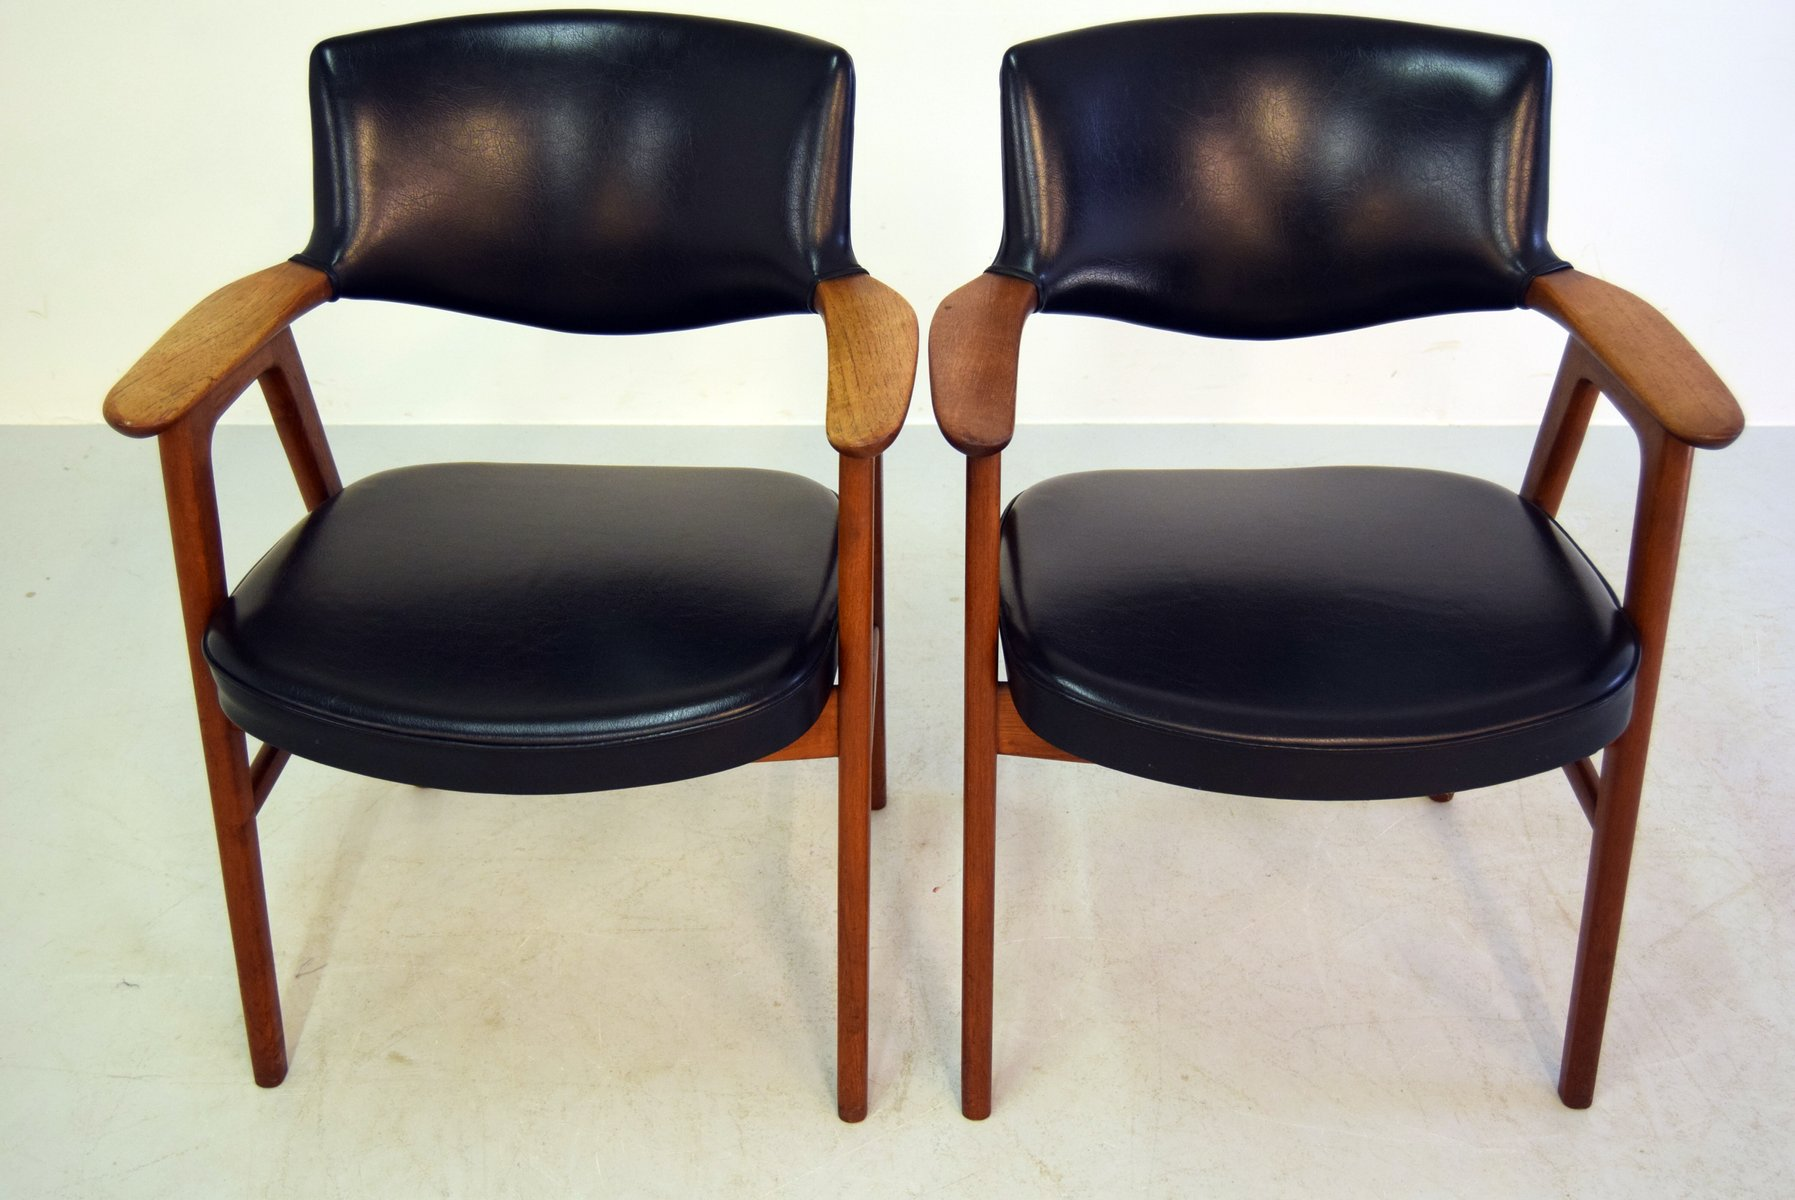 Mid century office chairs by erik kirkegaard for glostrup Mid century chairs